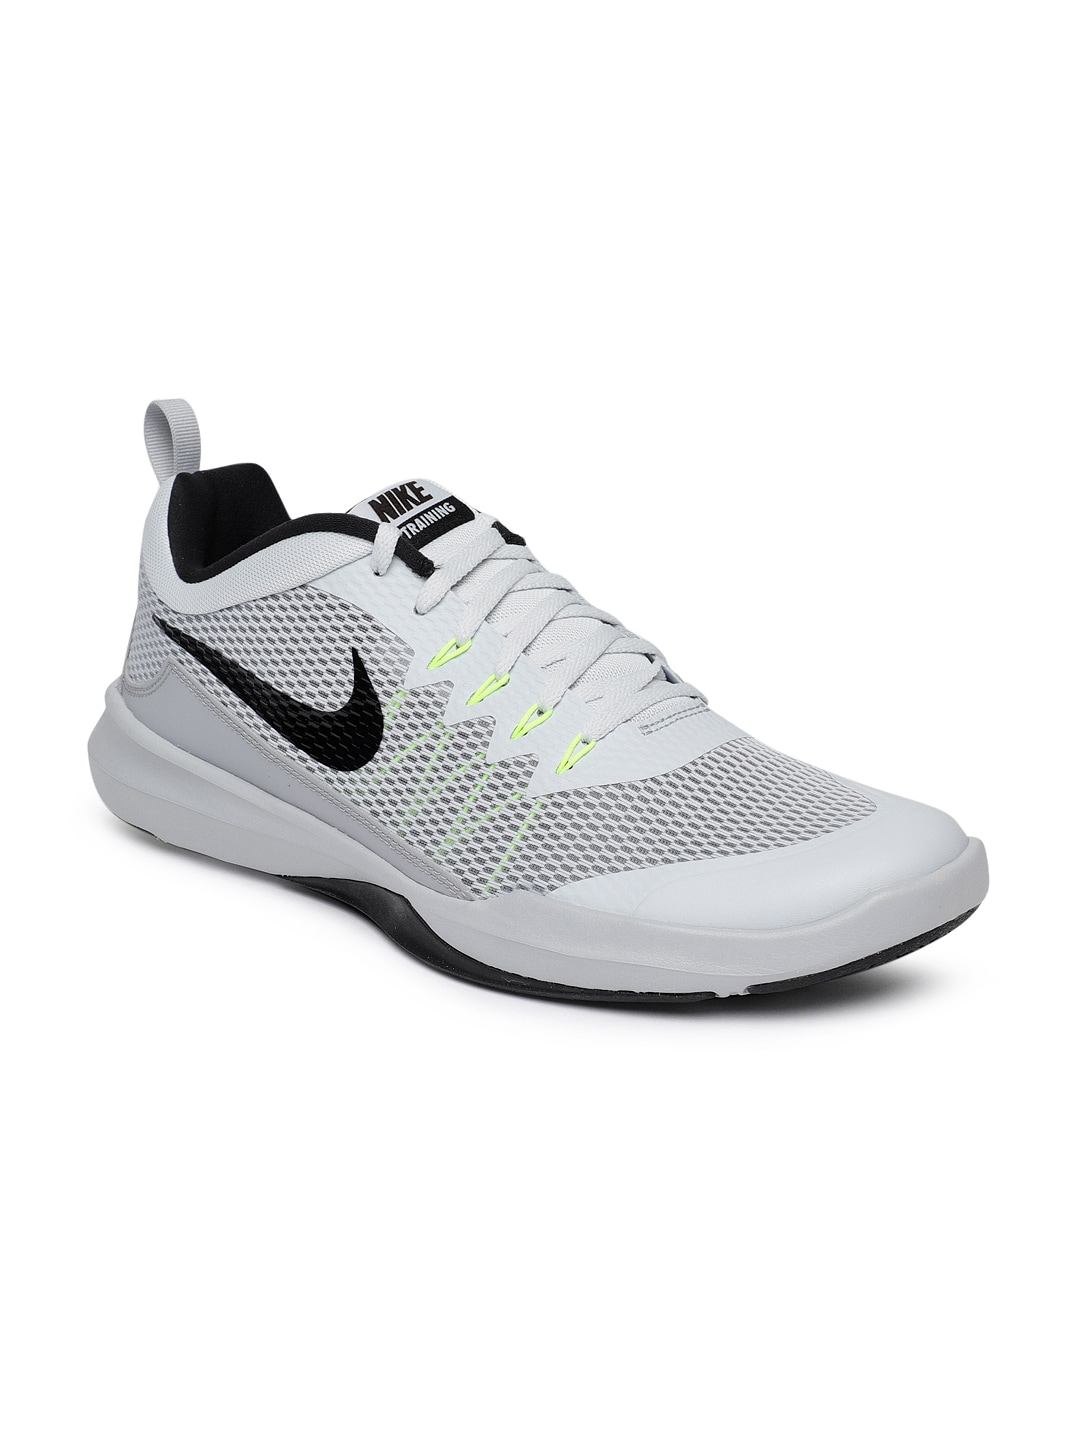 timeless design 67d14 5a933 Nike Shoes - Buy Nike Shoes for Men, Women   Kids Online   Myntra